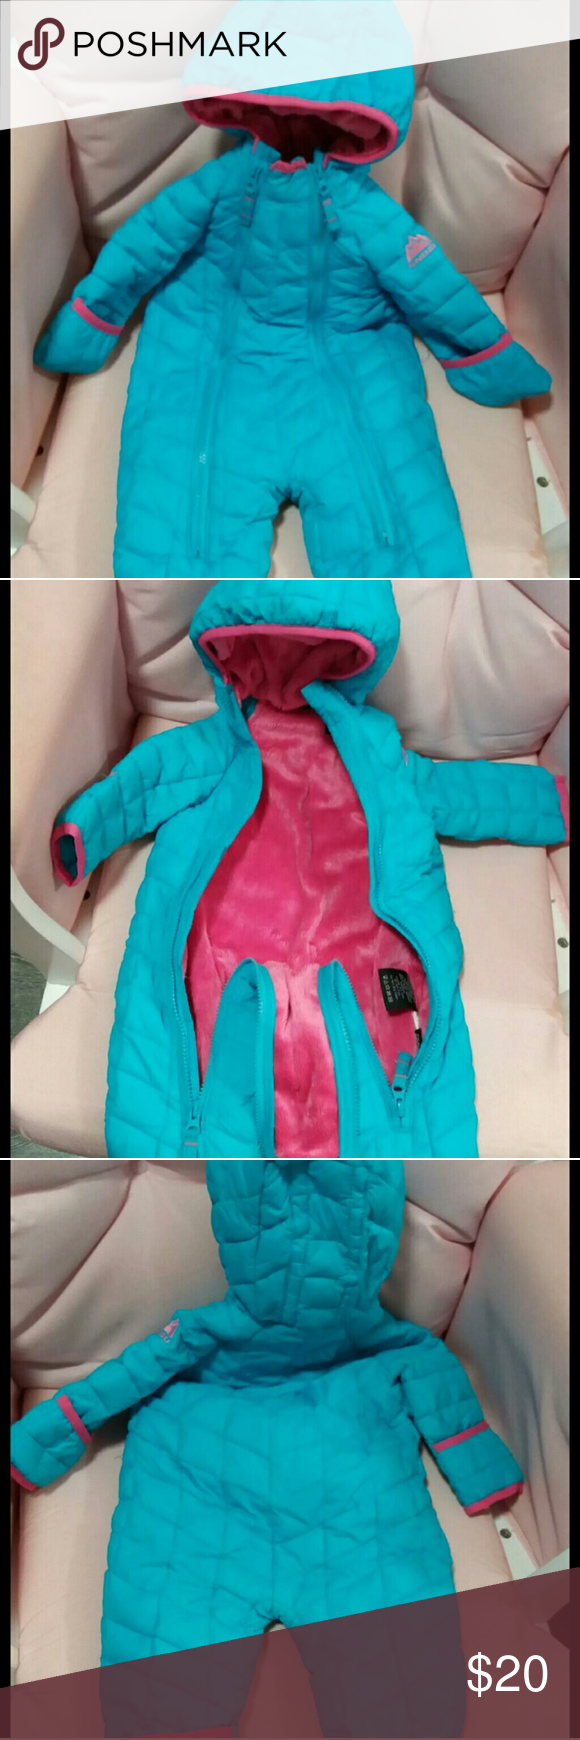 ae48b31038b0 Winter snow suit coat size 3-6 months 3-6 month old bright blue ...